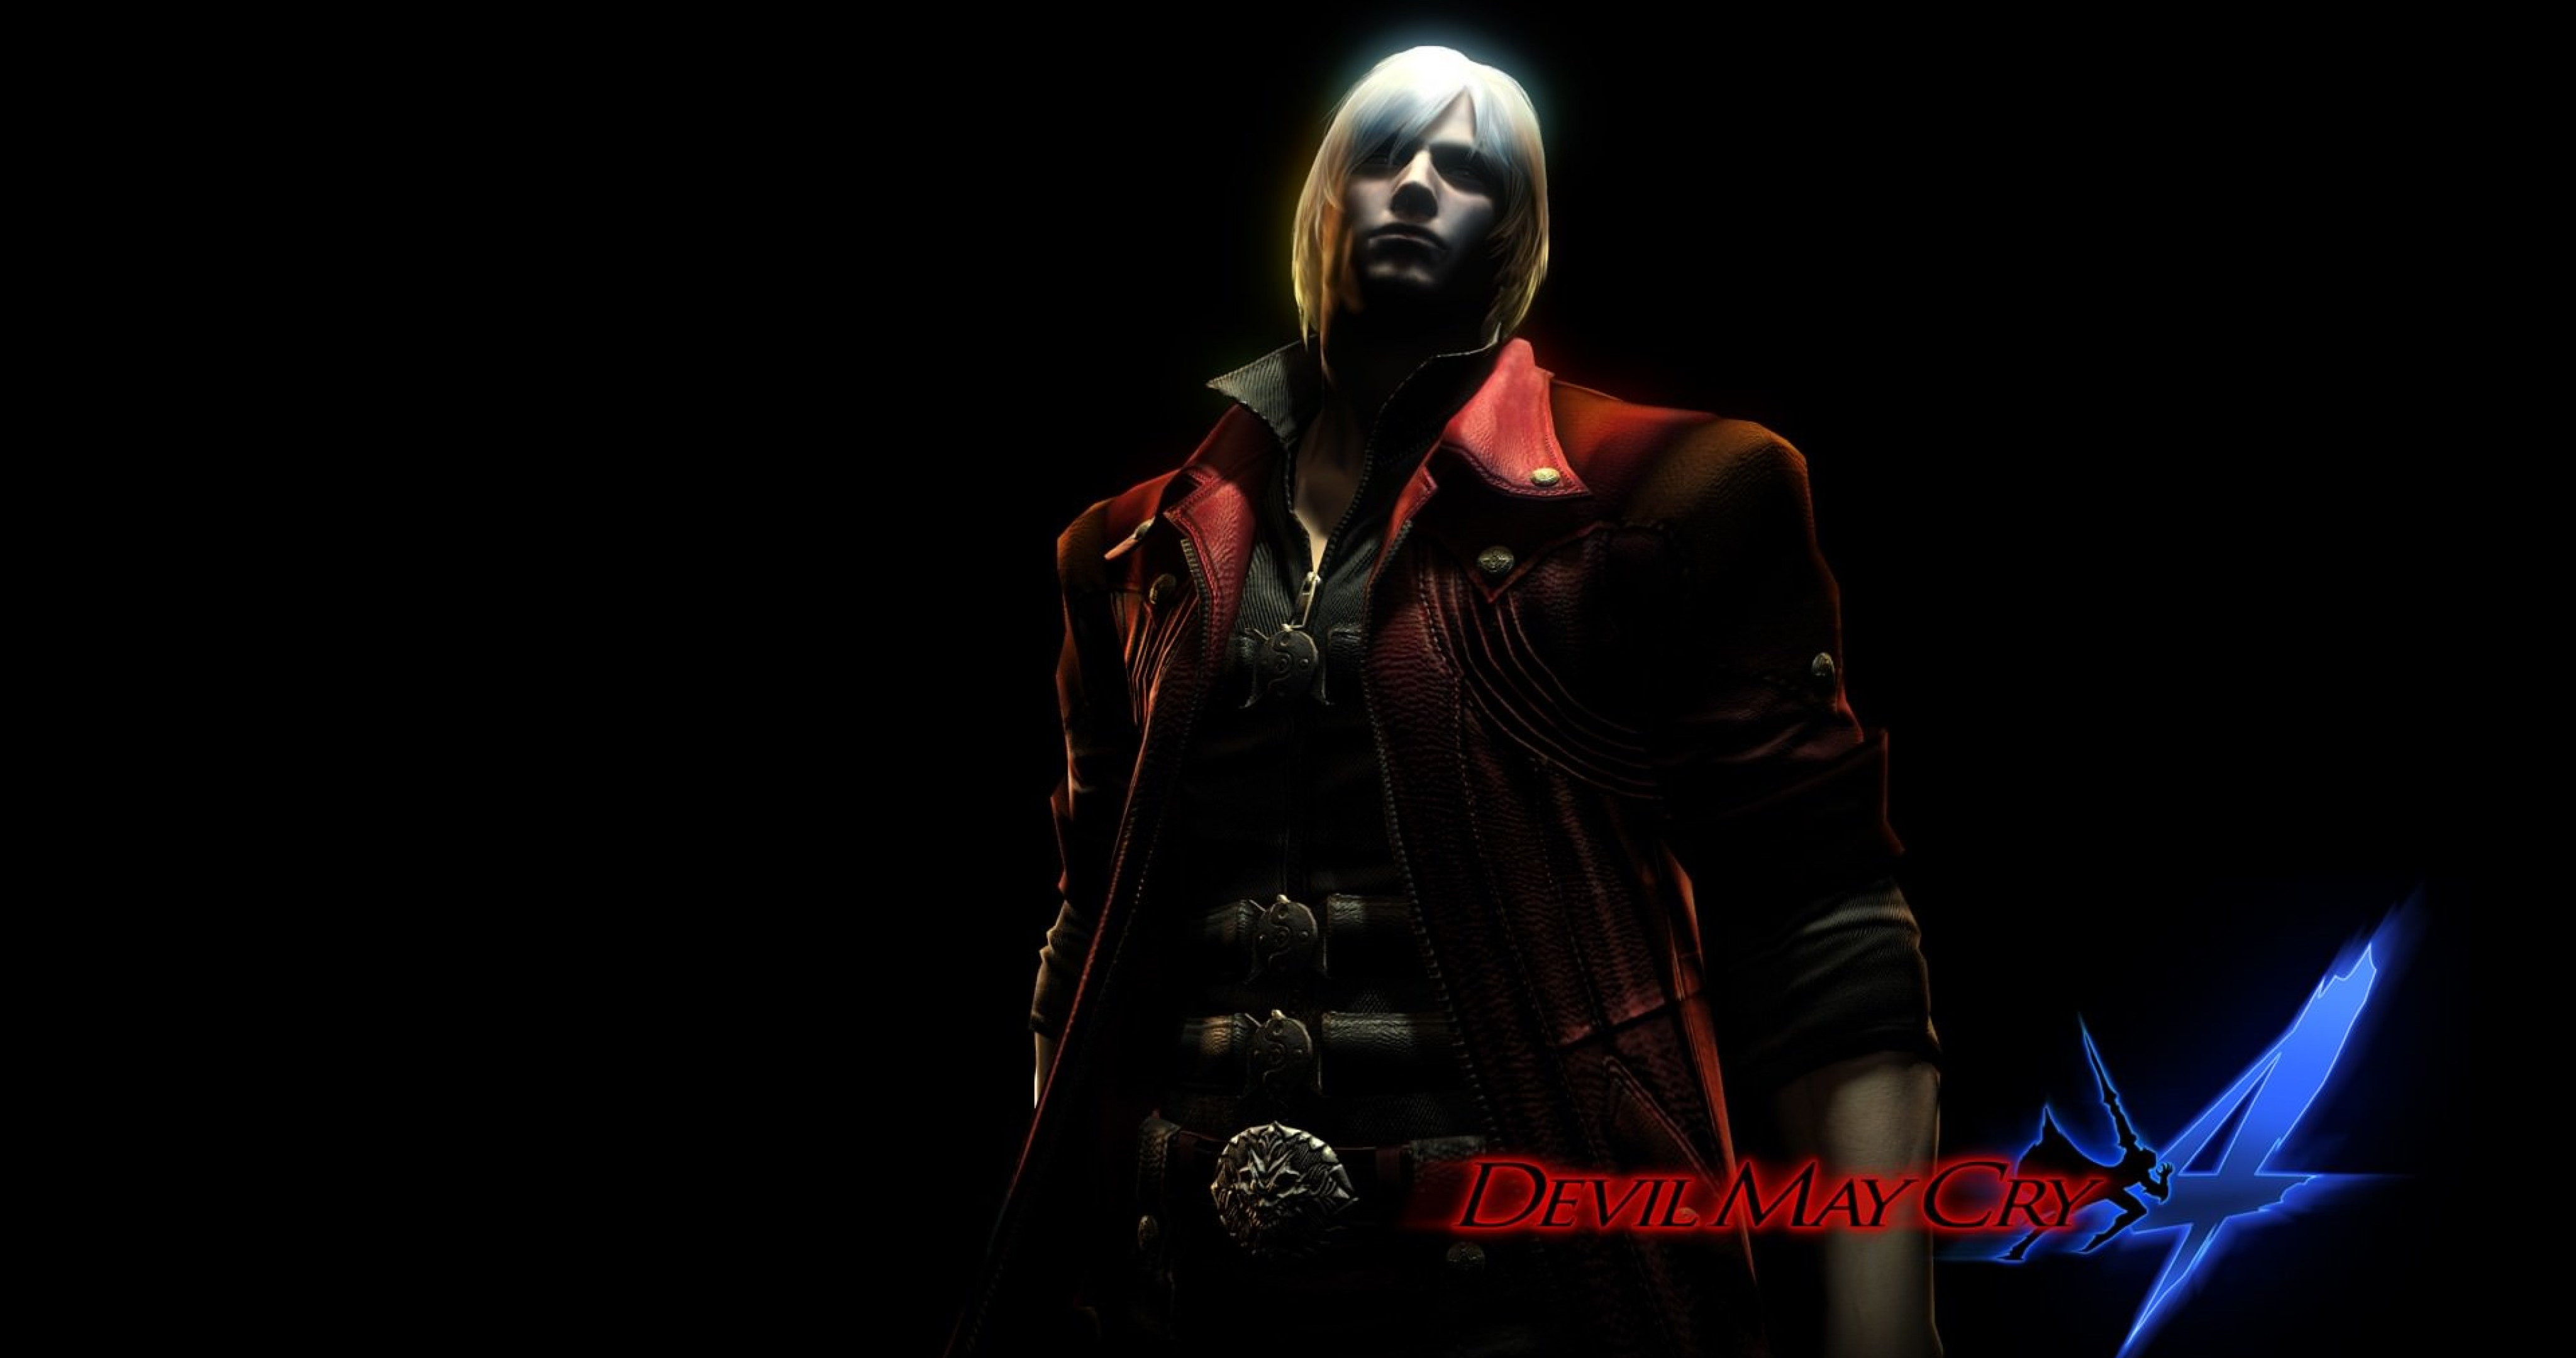 Devil May Cry 4 The Game Wallpaper 4k Ultra Hd